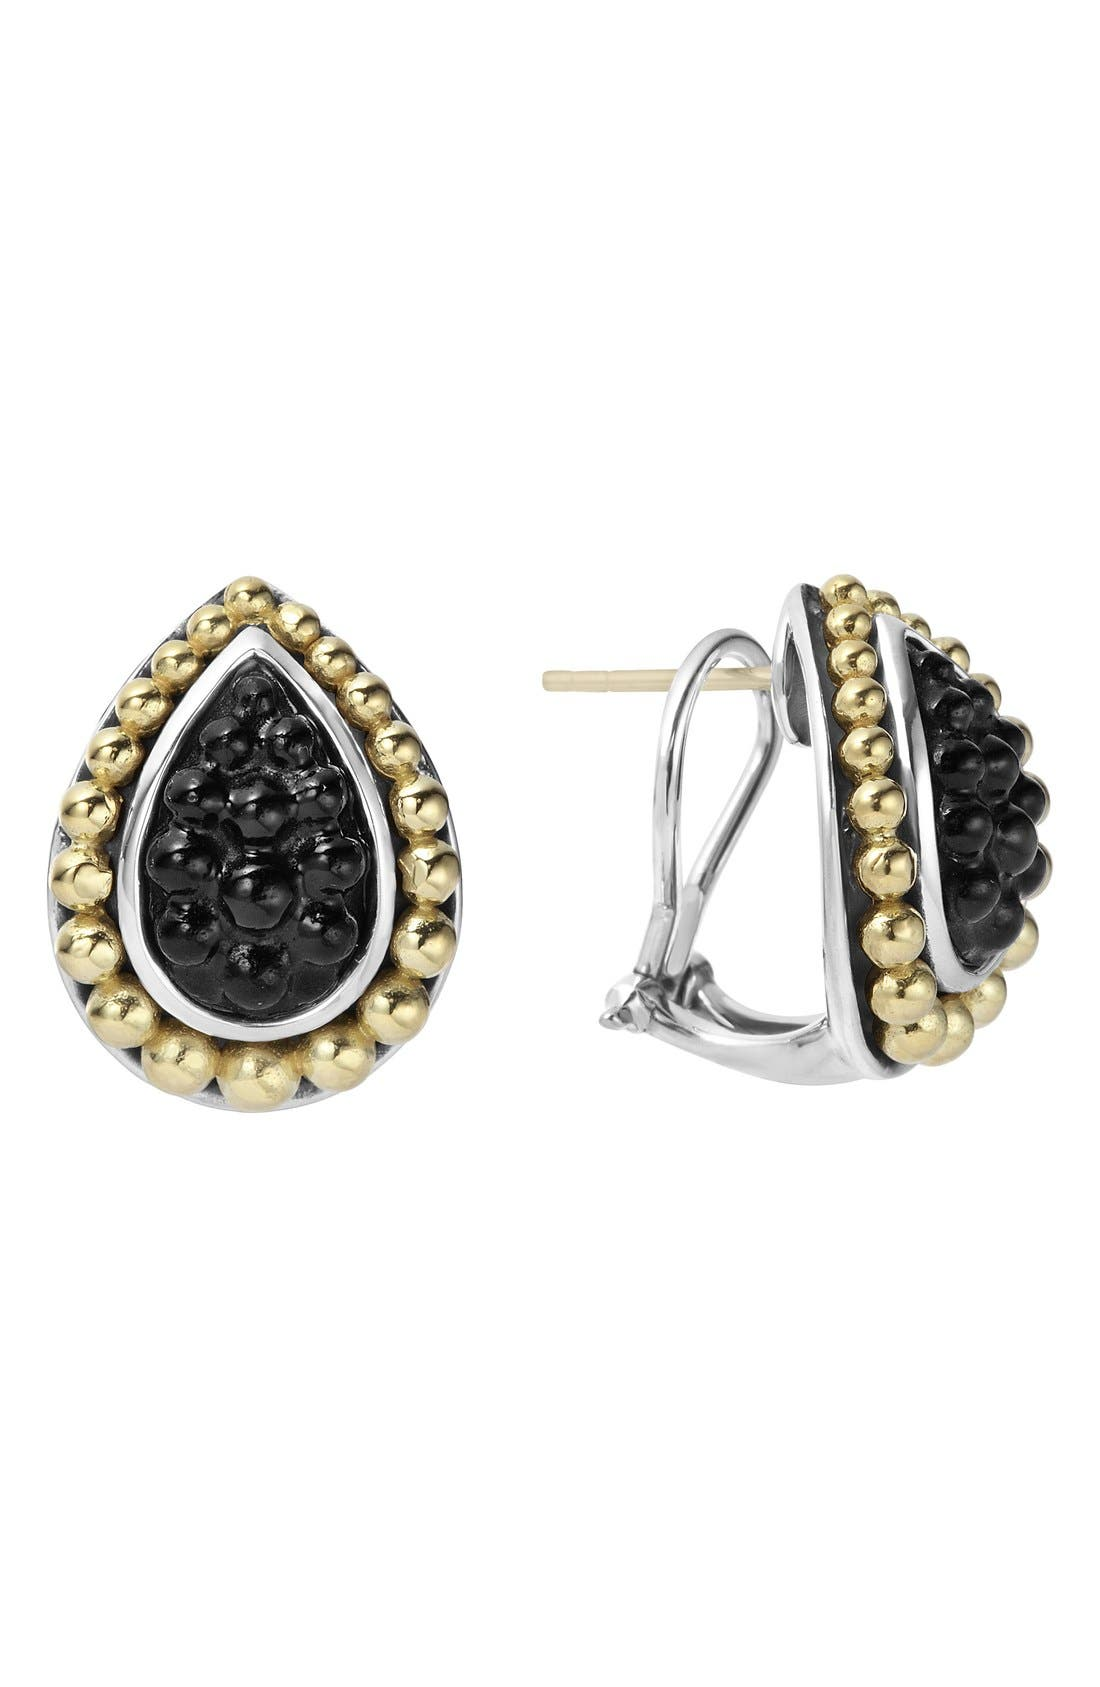 LAGOS 'Black Caviar' Stud Earrings